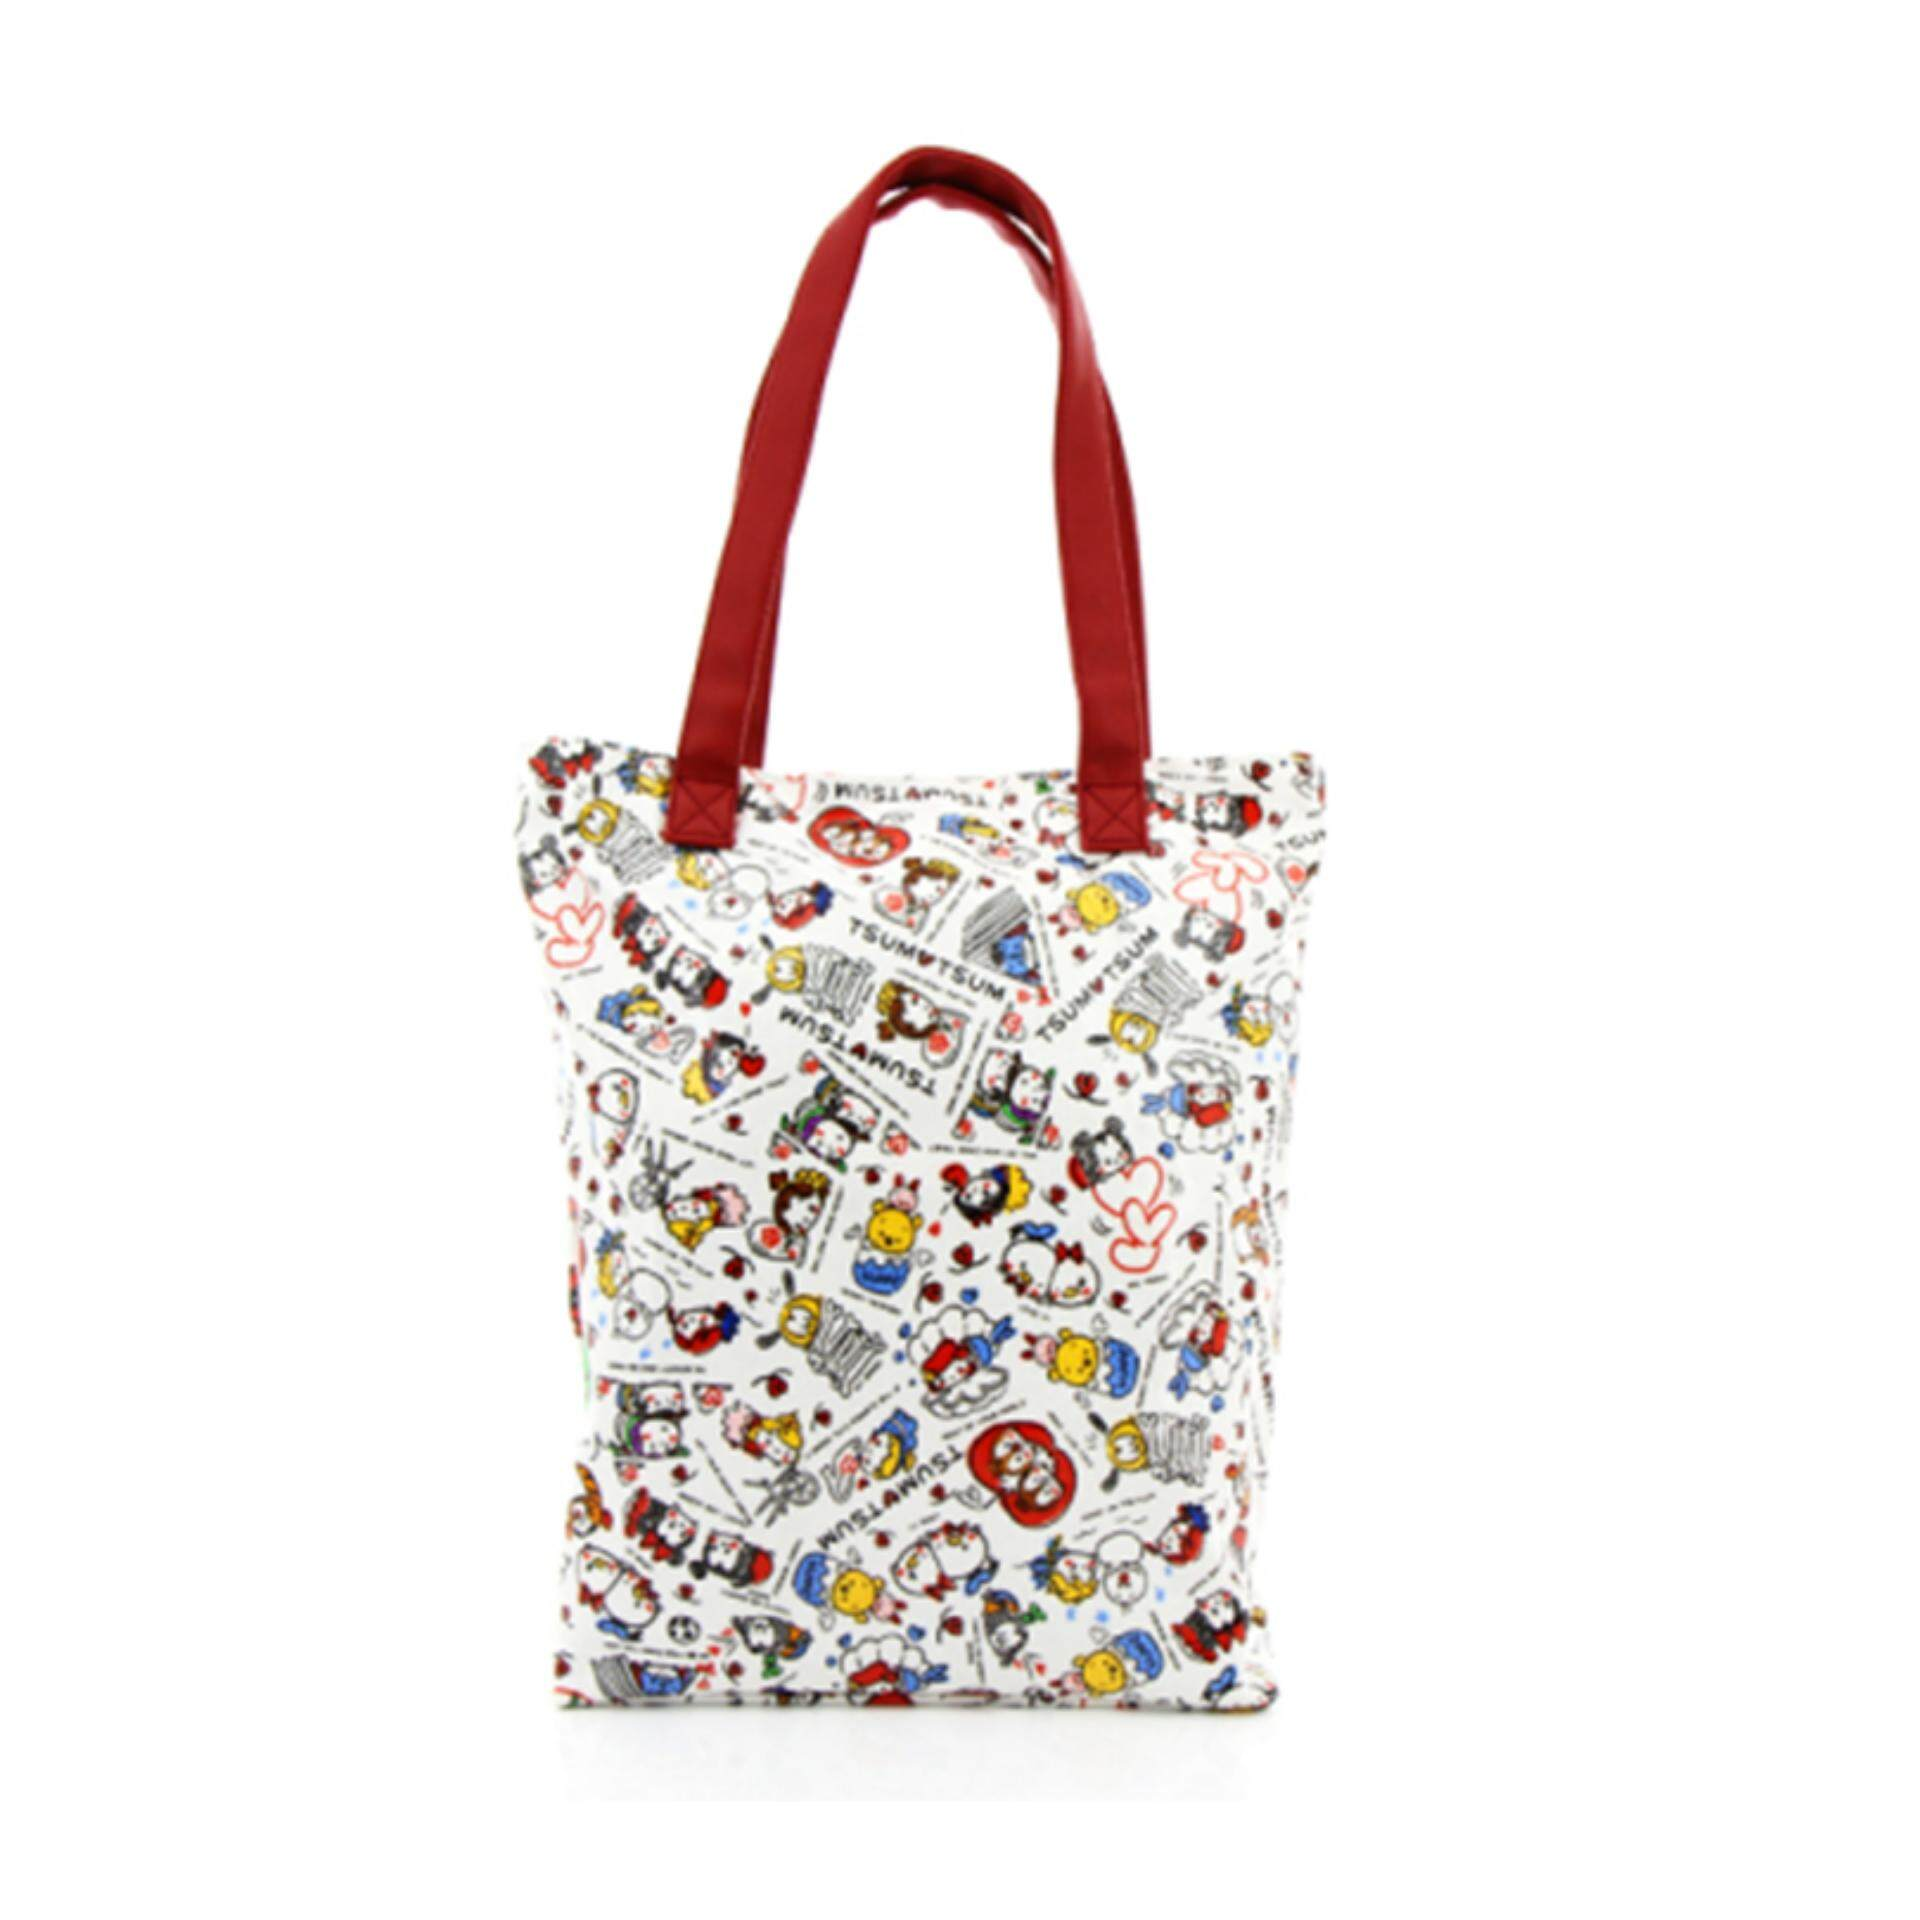 Tote Bag - Chain Breaker Tote by VIDA VIDA Visit Cheap Price Buy Cheap Outlet Locations Free Shipping Perfect uNo3me12